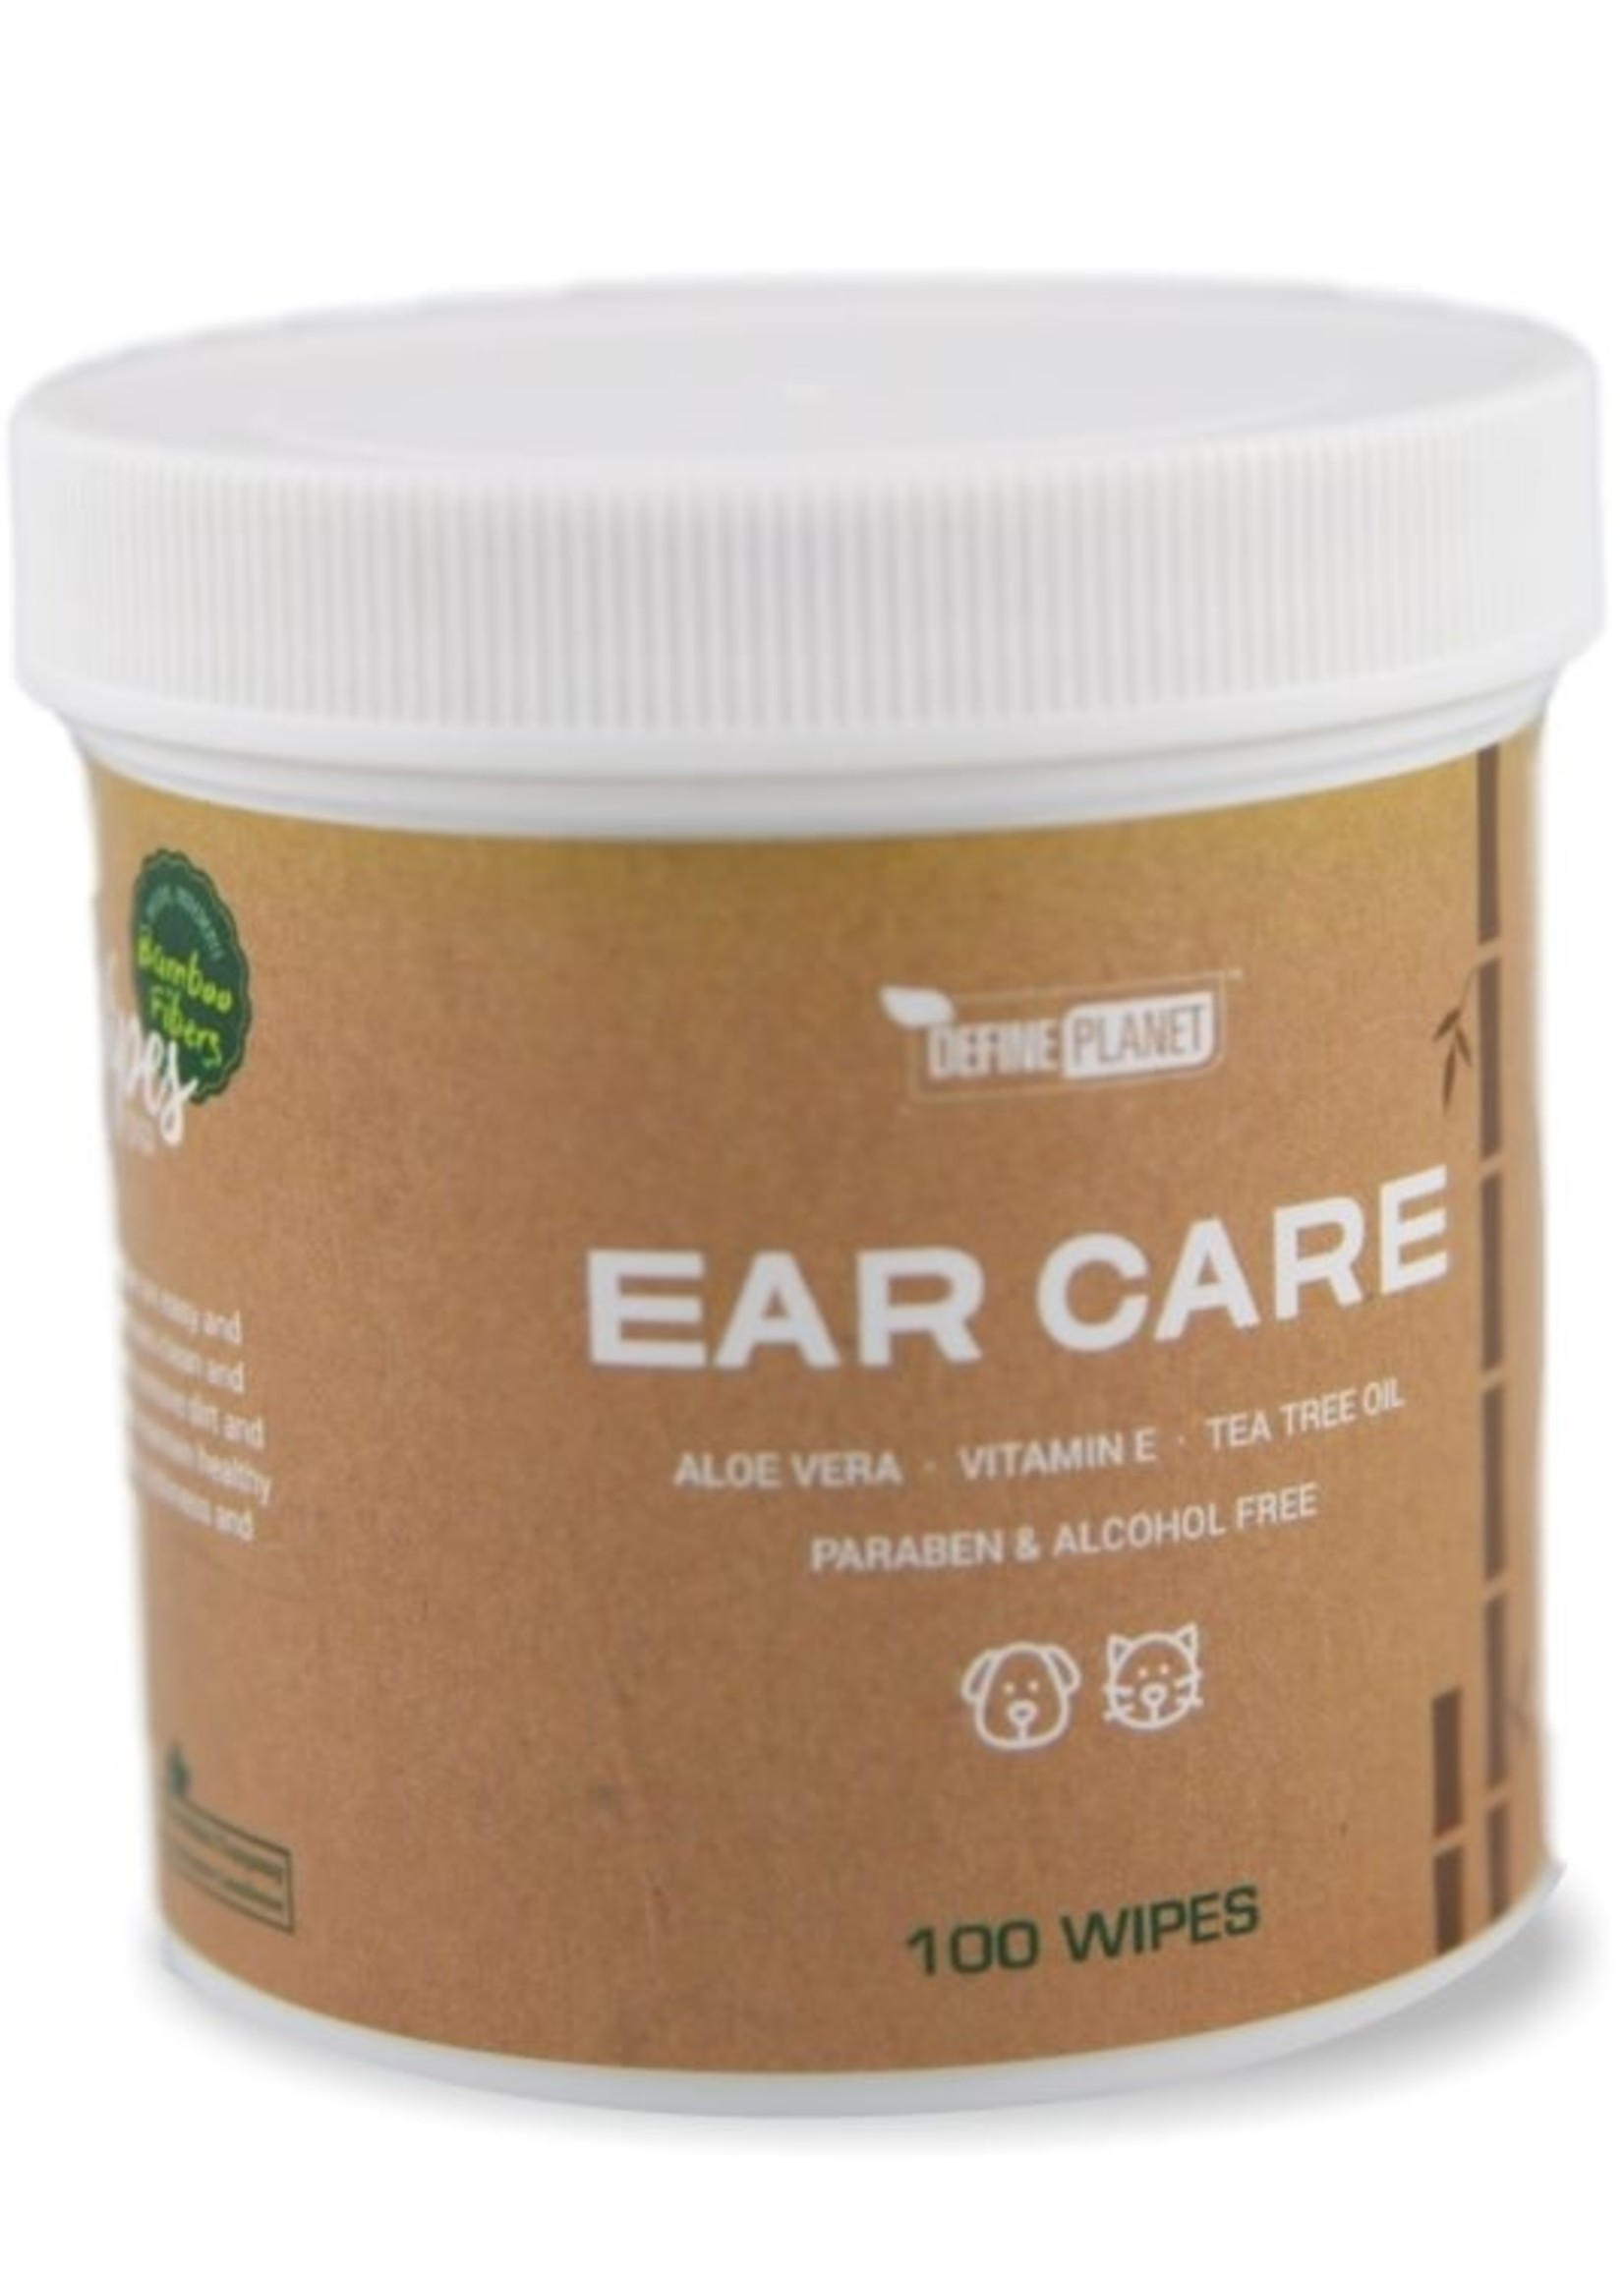 DefinePlanet BooWipes Ear Care Wipes 100ct